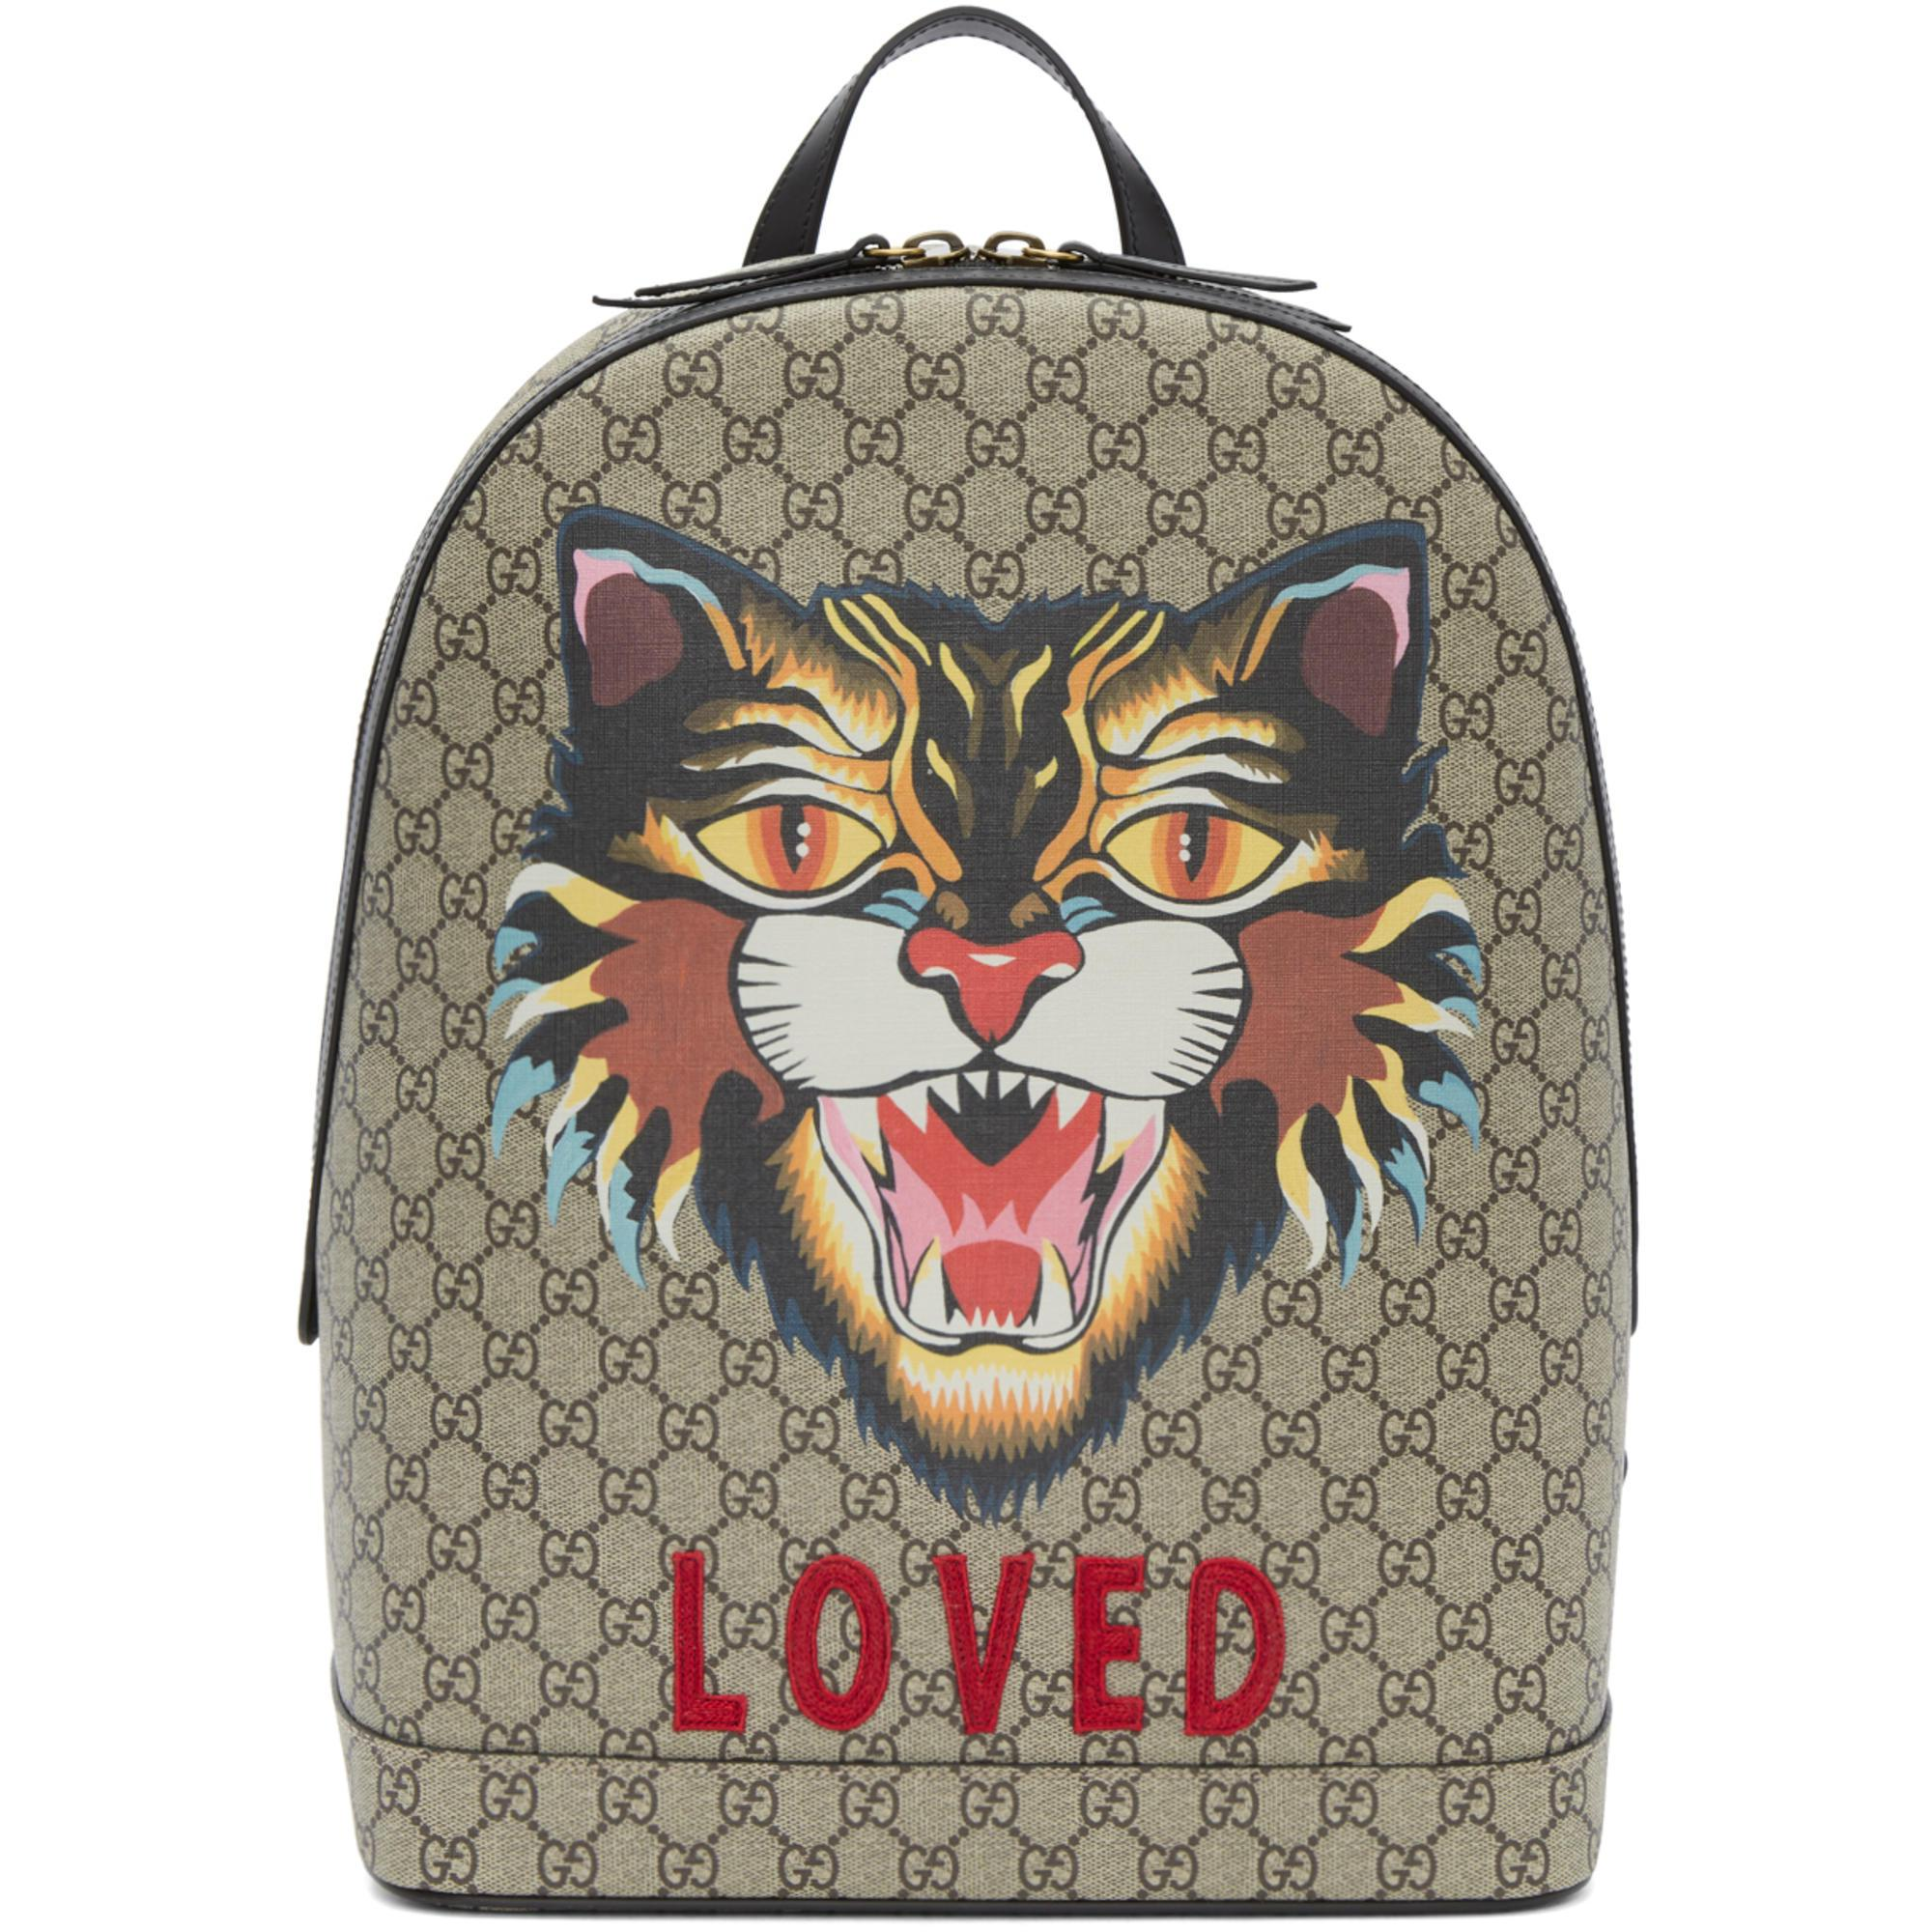 8cd0c893da4 Lyst - Gucci Beige Gg Supreme  loved  Angry Cat Backpack in Natural ...